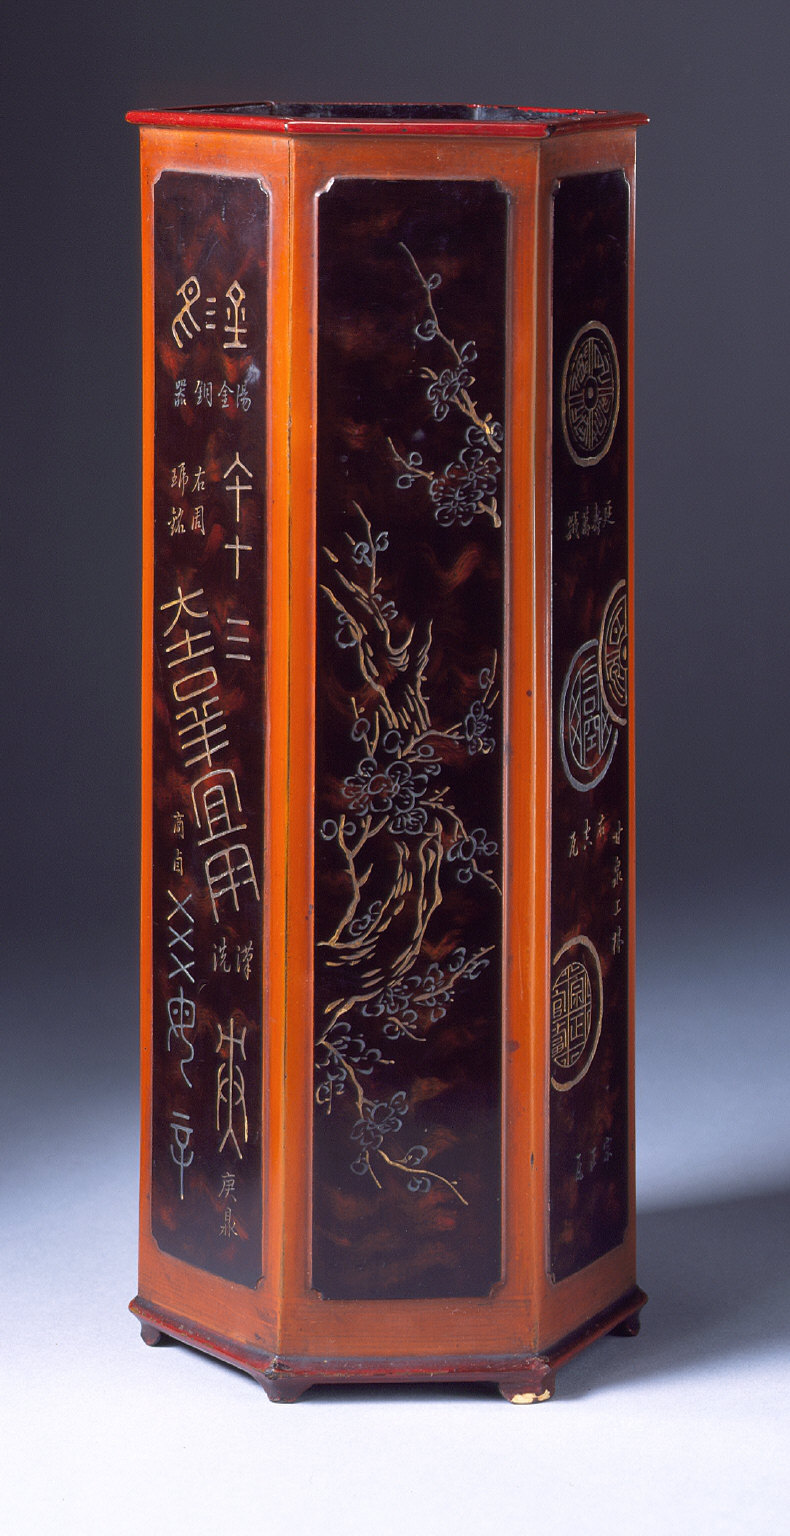 Pair of Hexagonal Hat Stands (Maojia) with Flowers, Birds, and Calligraphy Inscriptions